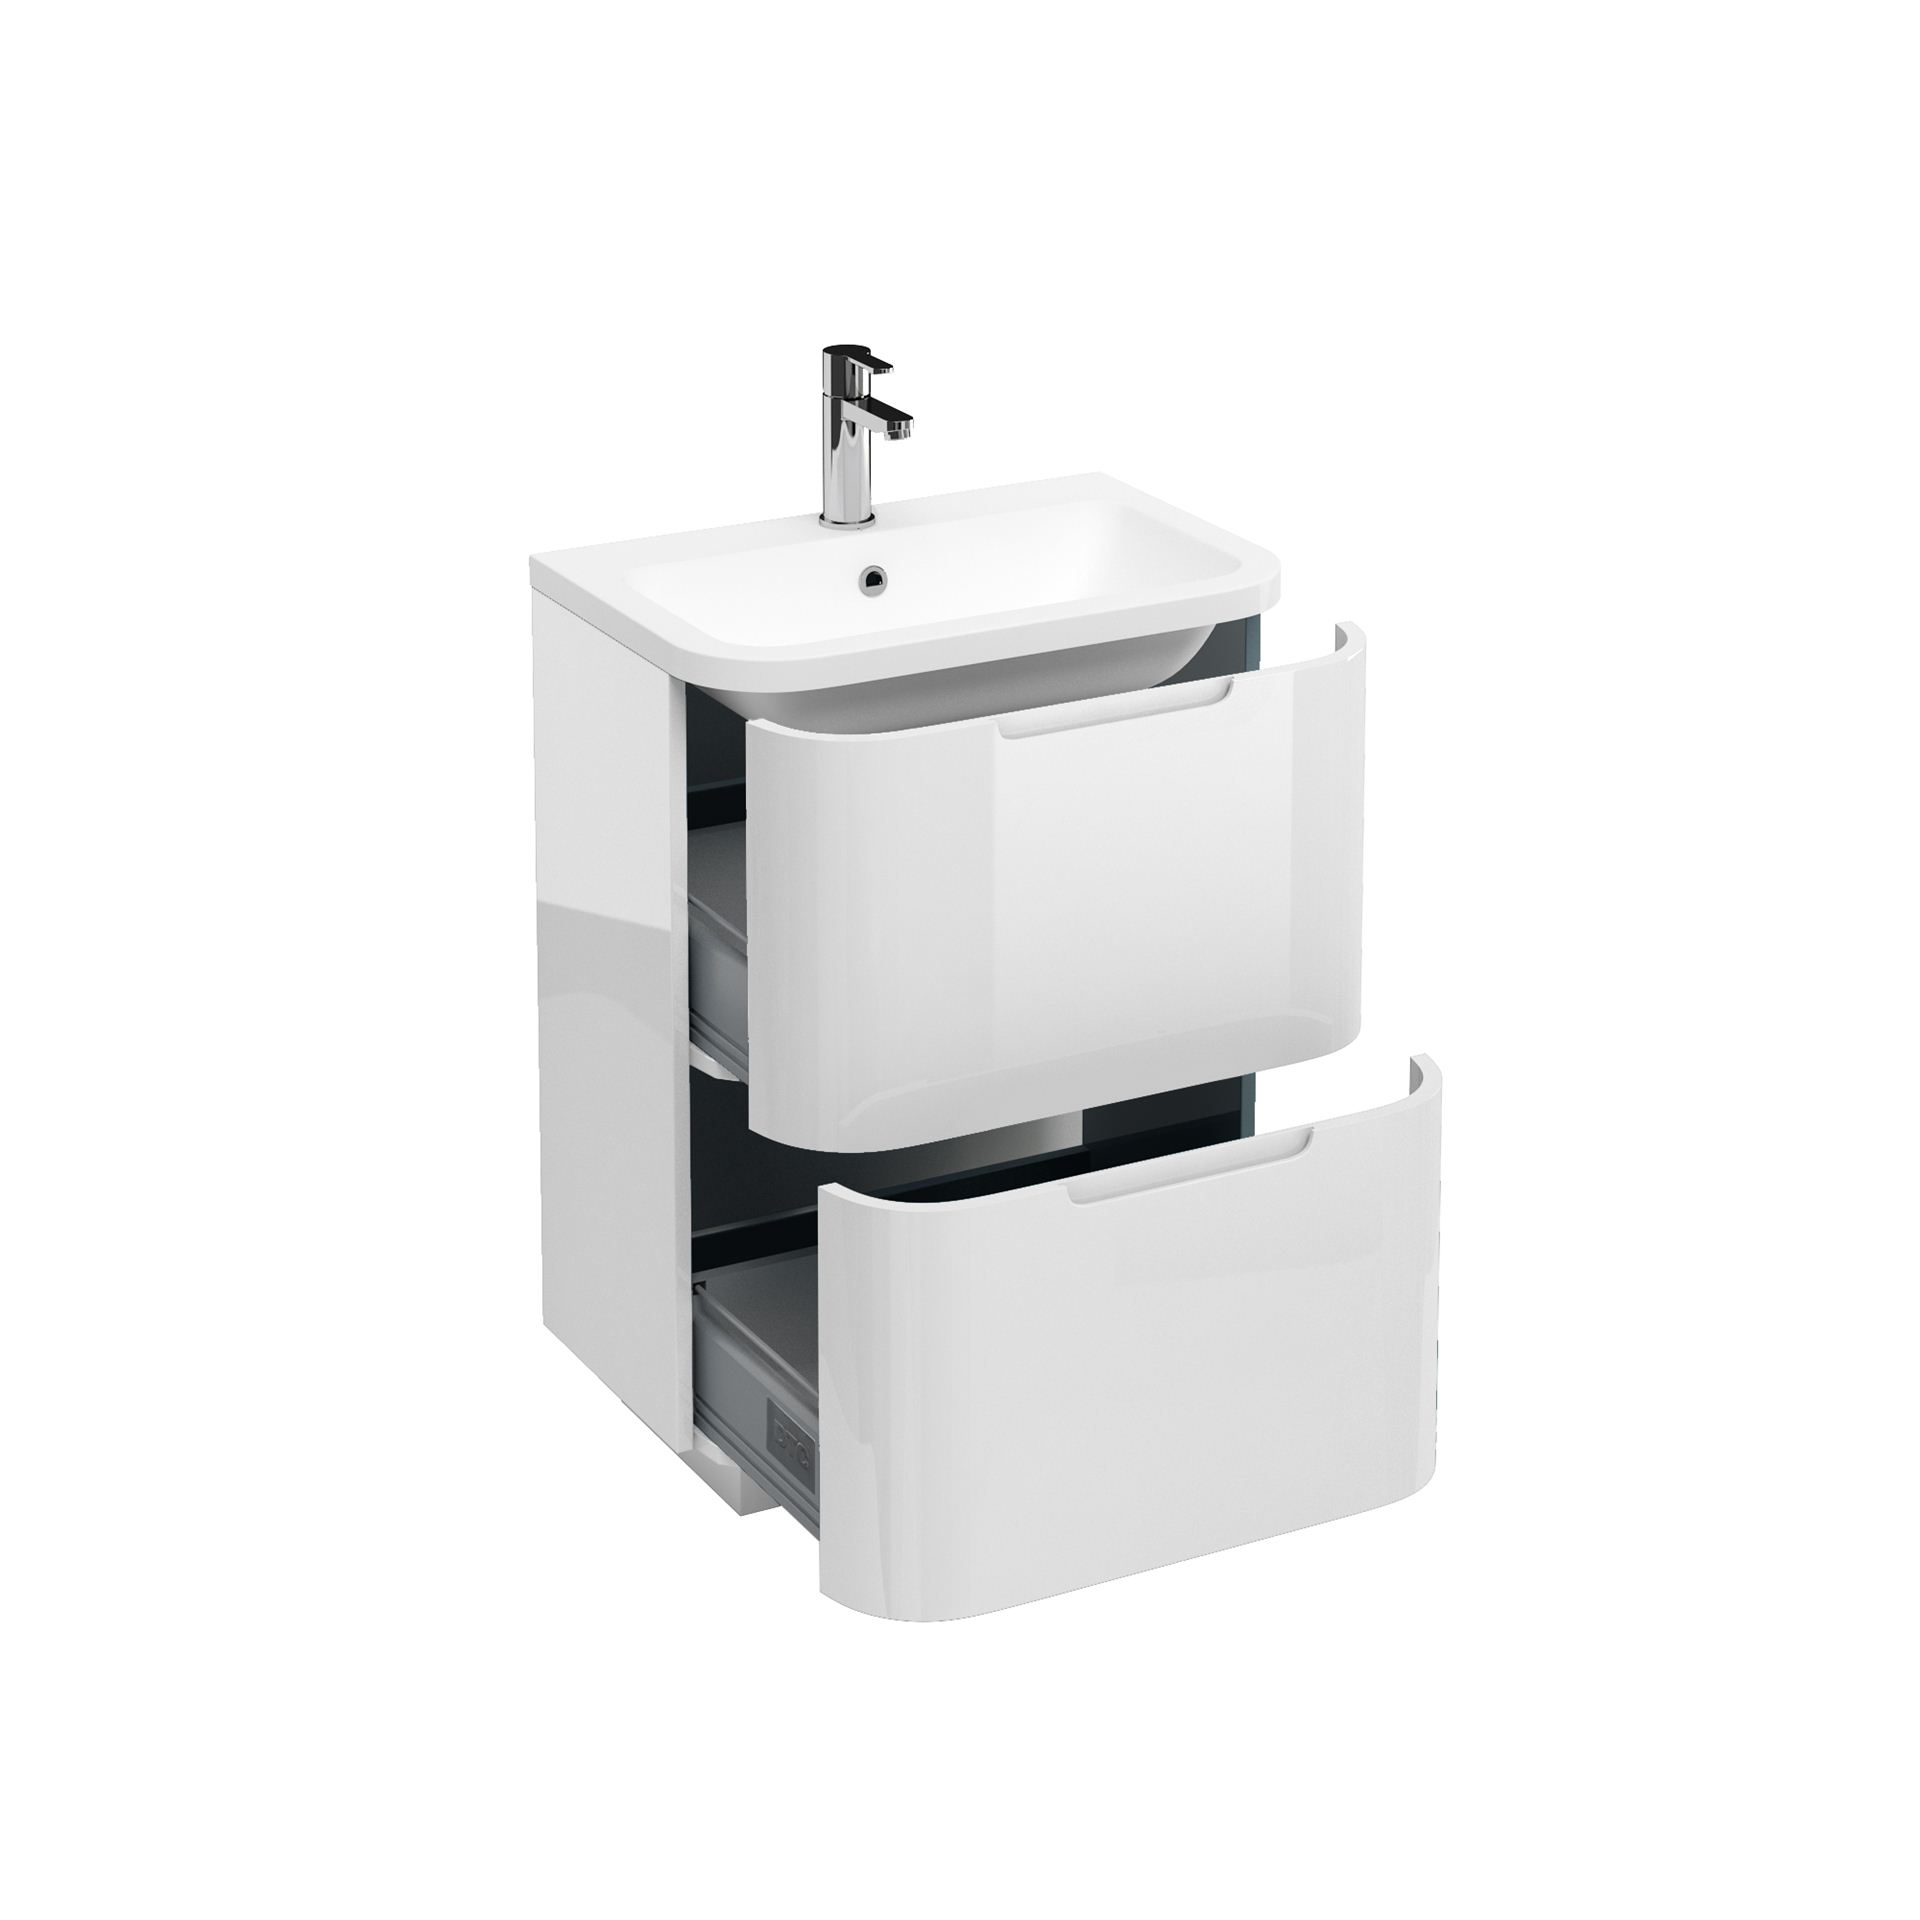 Aqua Compact 600 Two Drawer Floor Standing Vanity Unit With Compact 600mm Qua